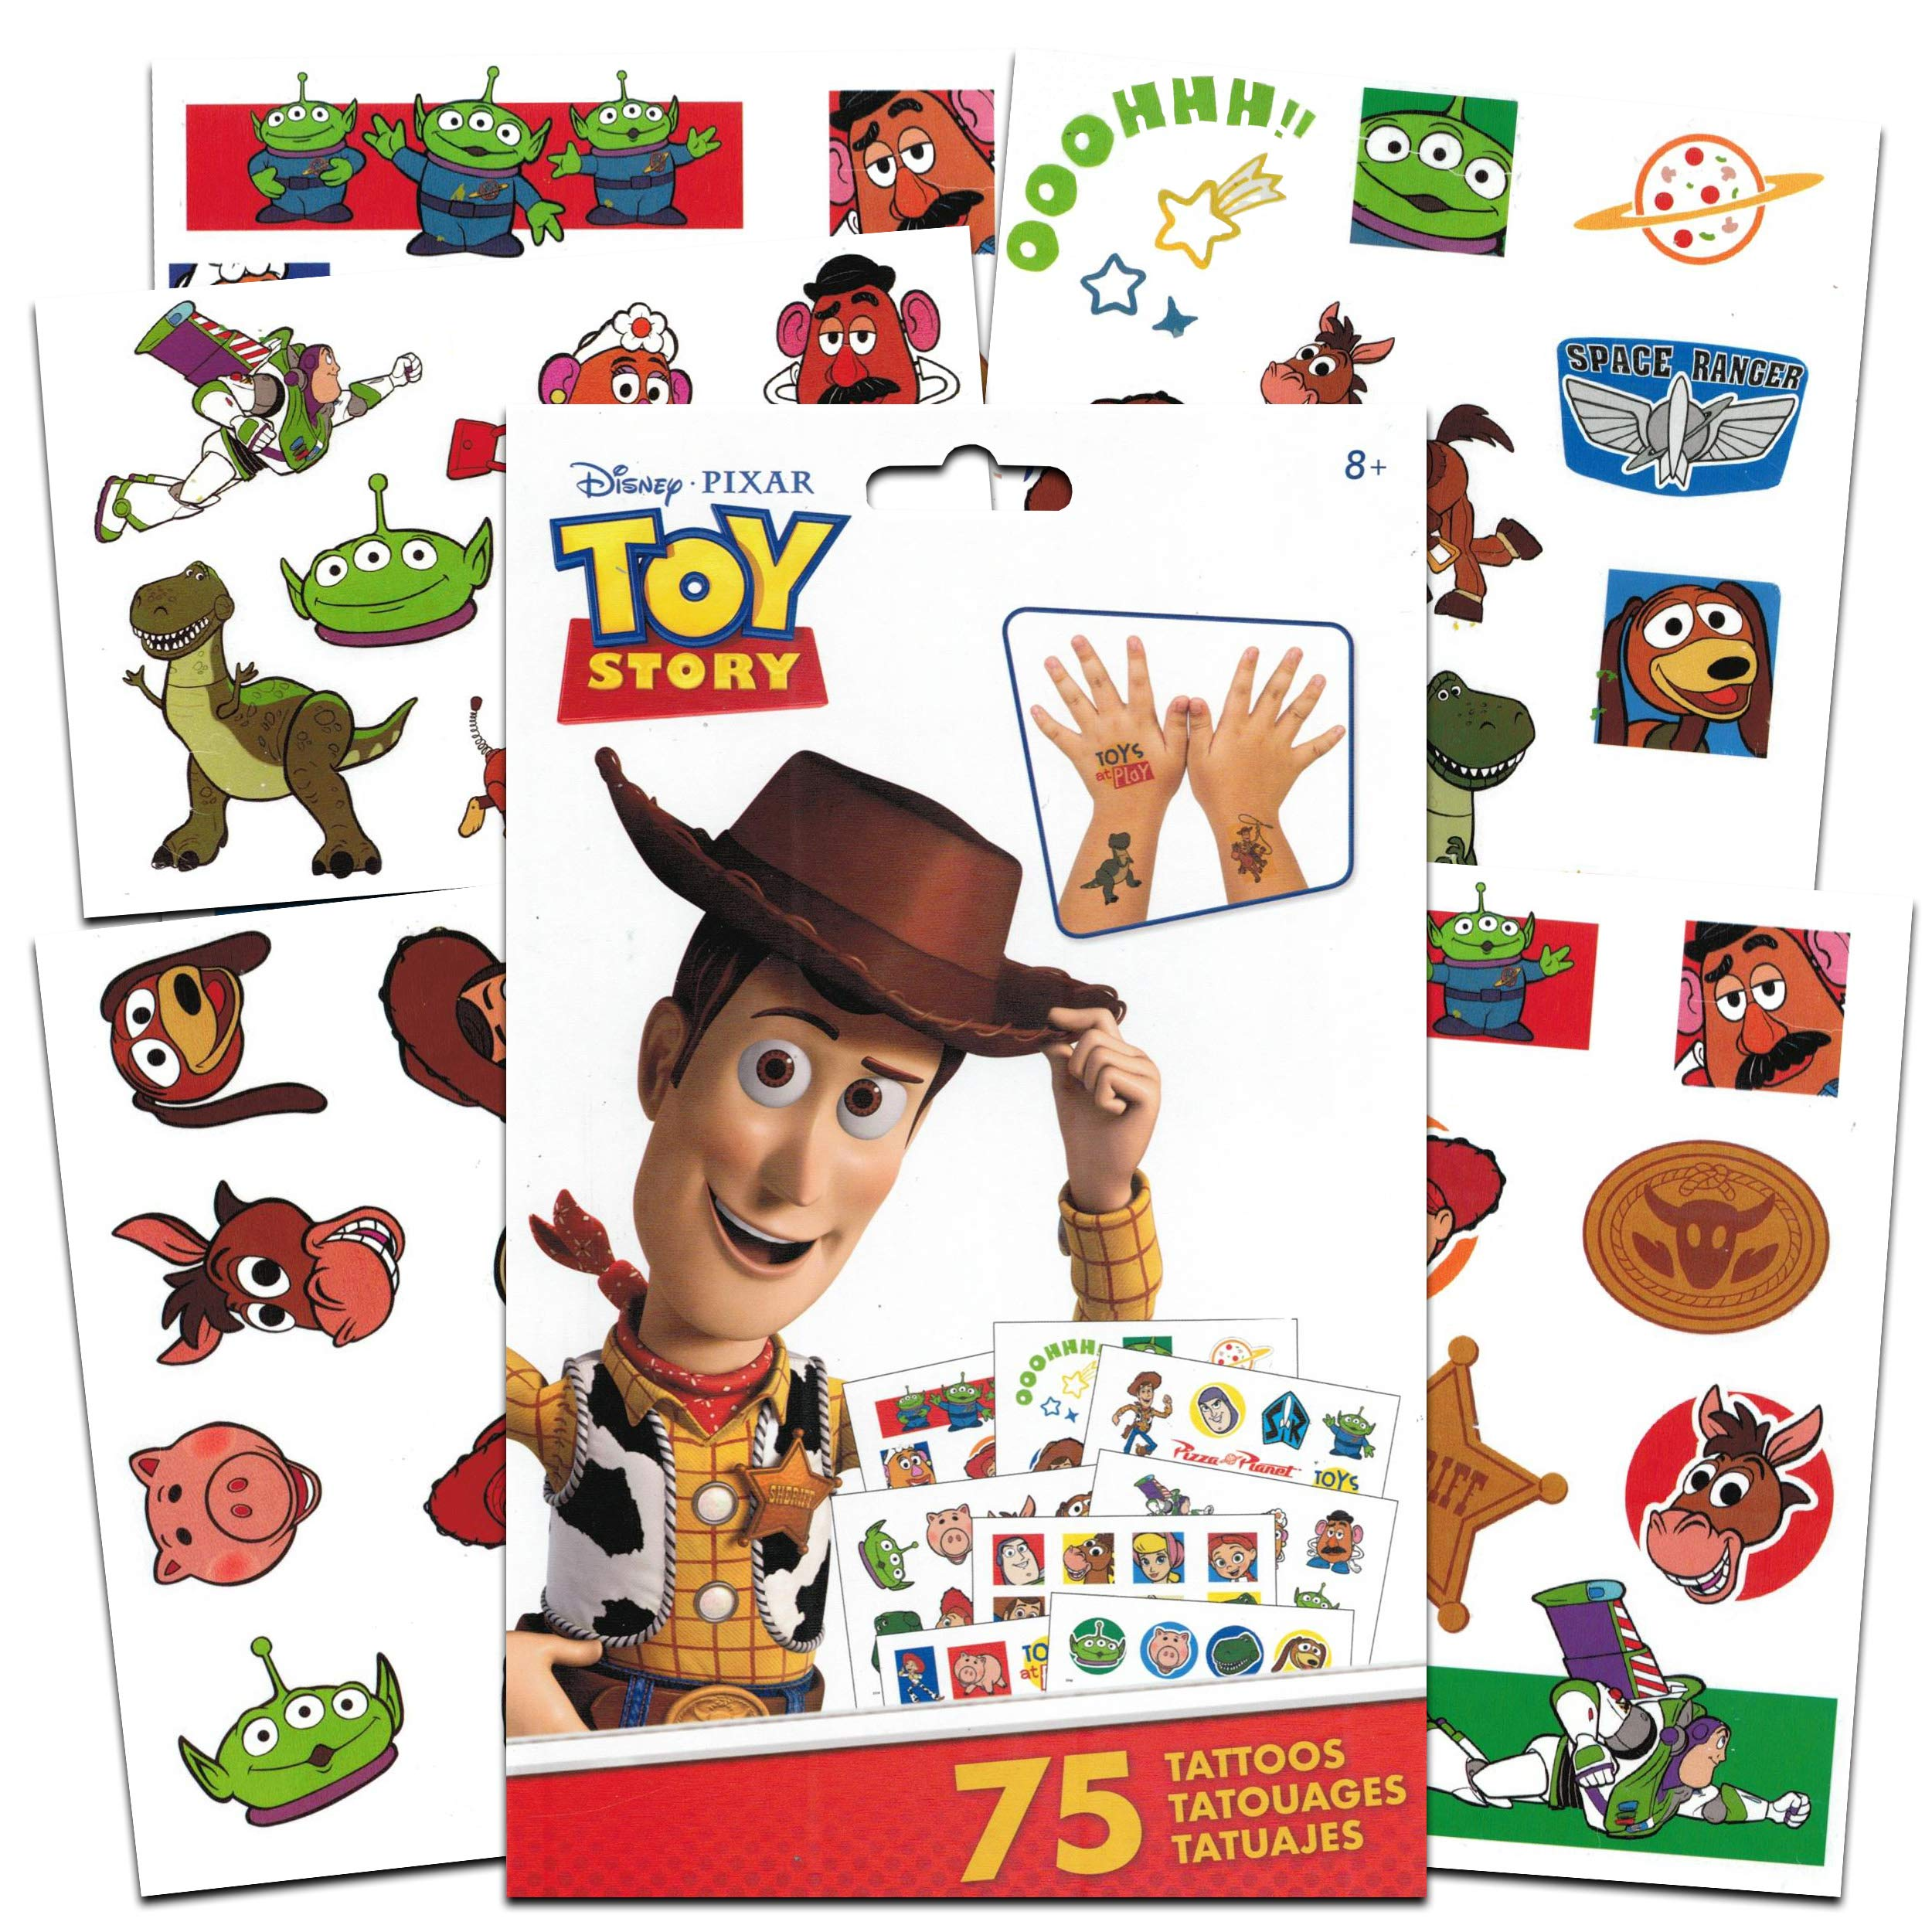 Disney Pixar Toy Story Tattoos Party Favors Pack ~ Bundle Includes 75 Toy Story Temporary Tattoos Tattoos (Toy Story Party Supplies)